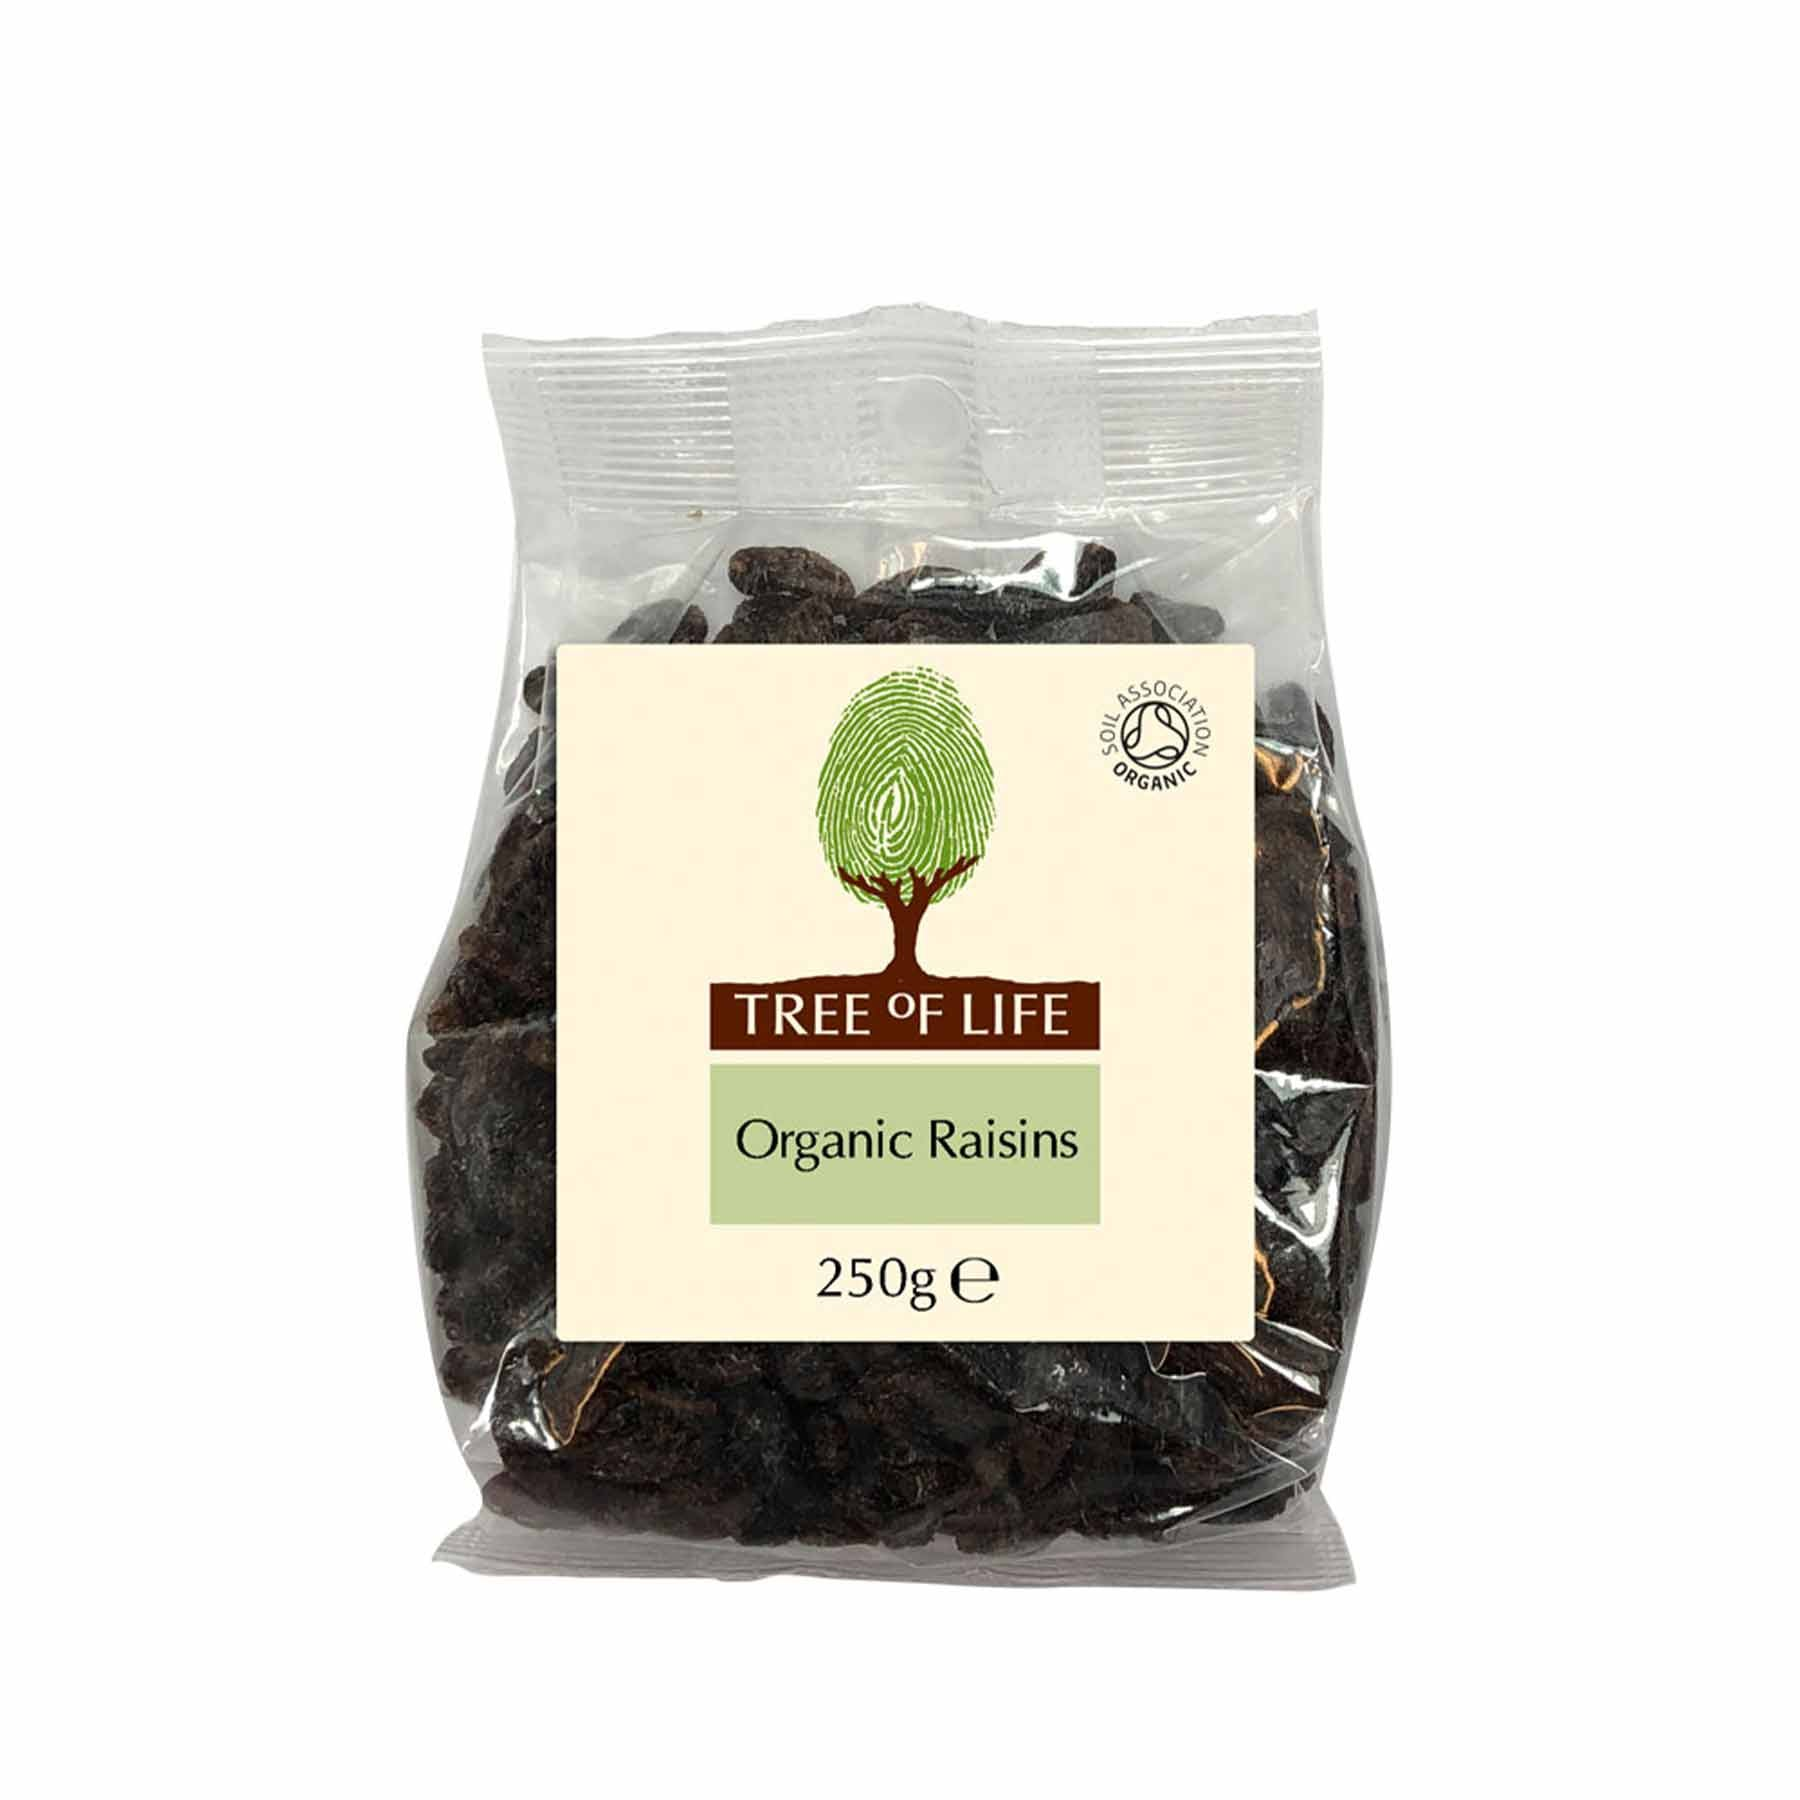 Packshot - Organic Raisins by Tree of Life